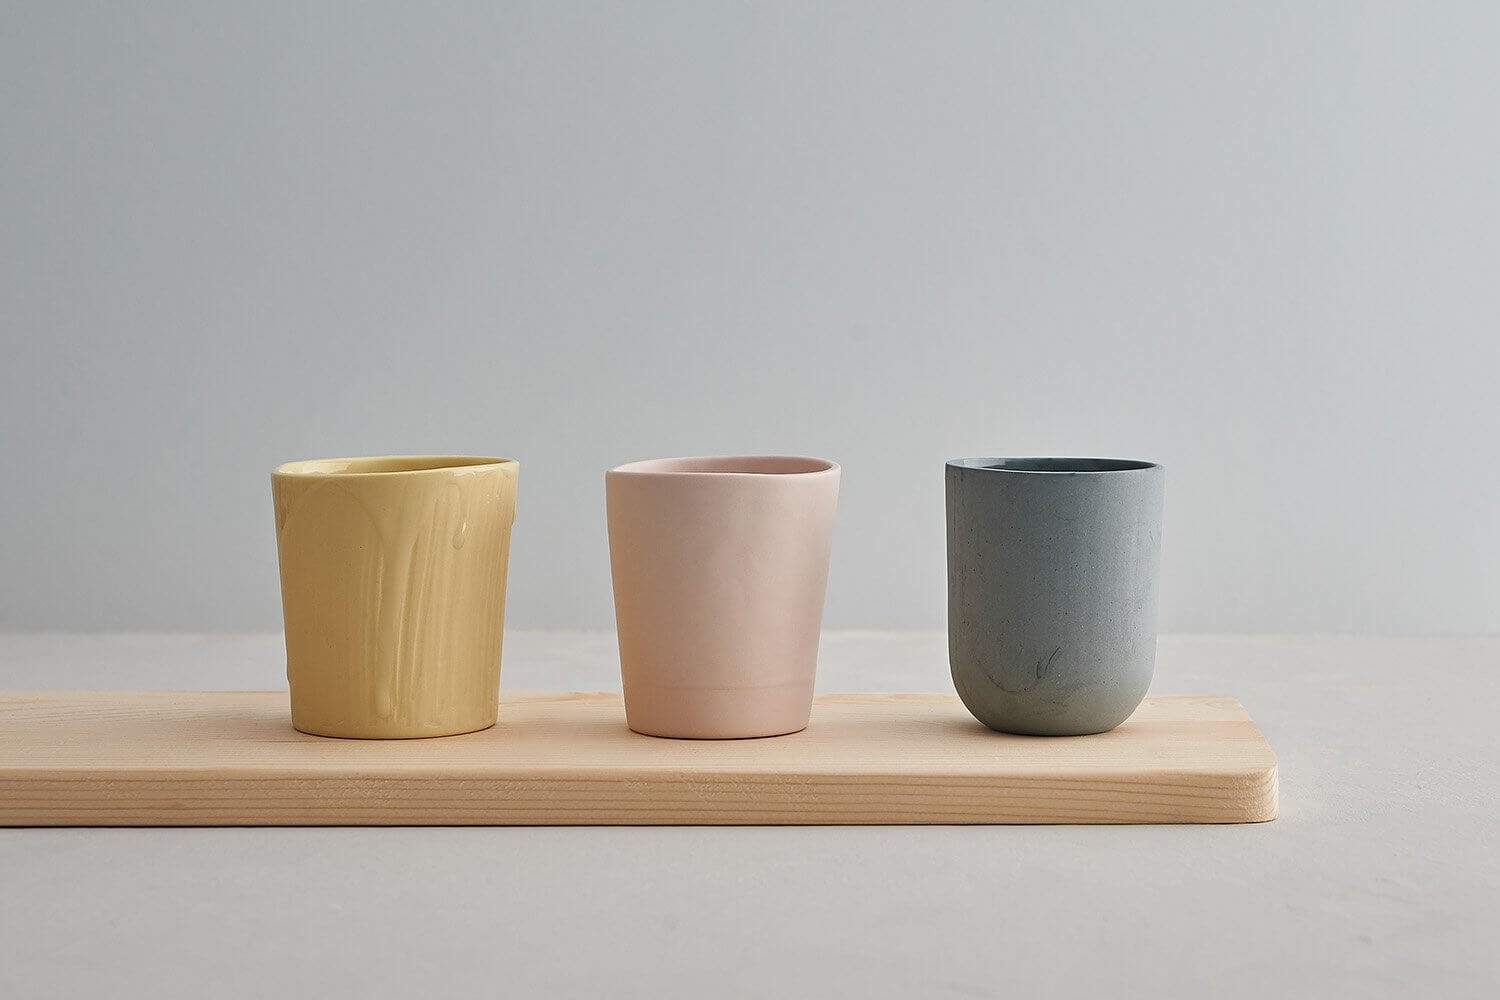 Contemporary handmade ceramics photographed against subtle coloured backdrop